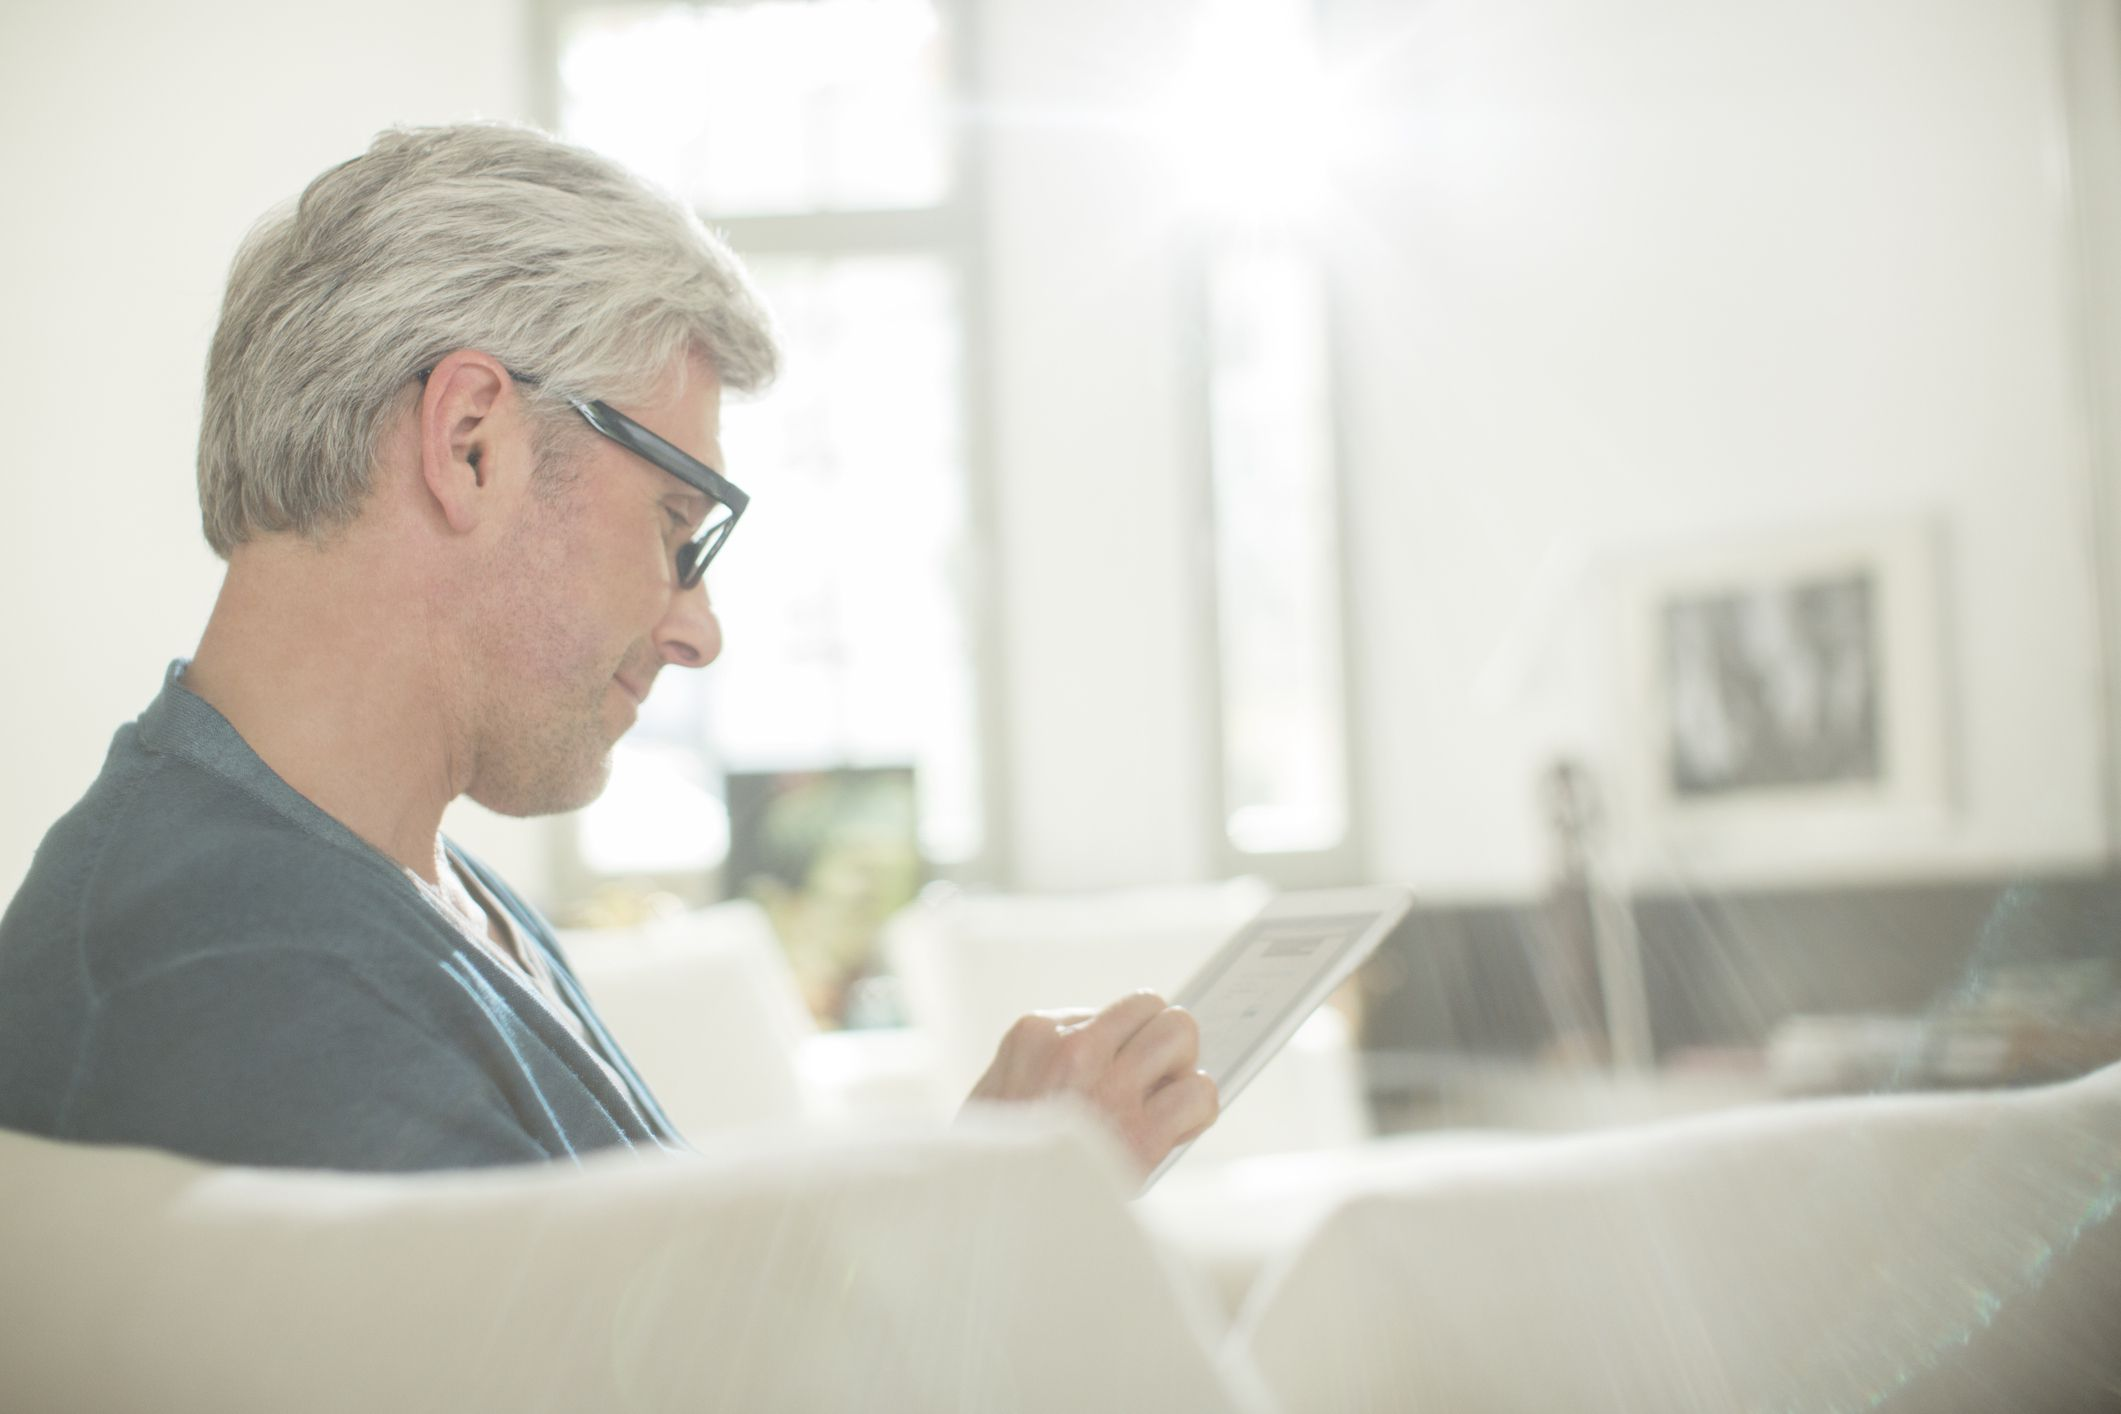 Man reading on tablet in living room